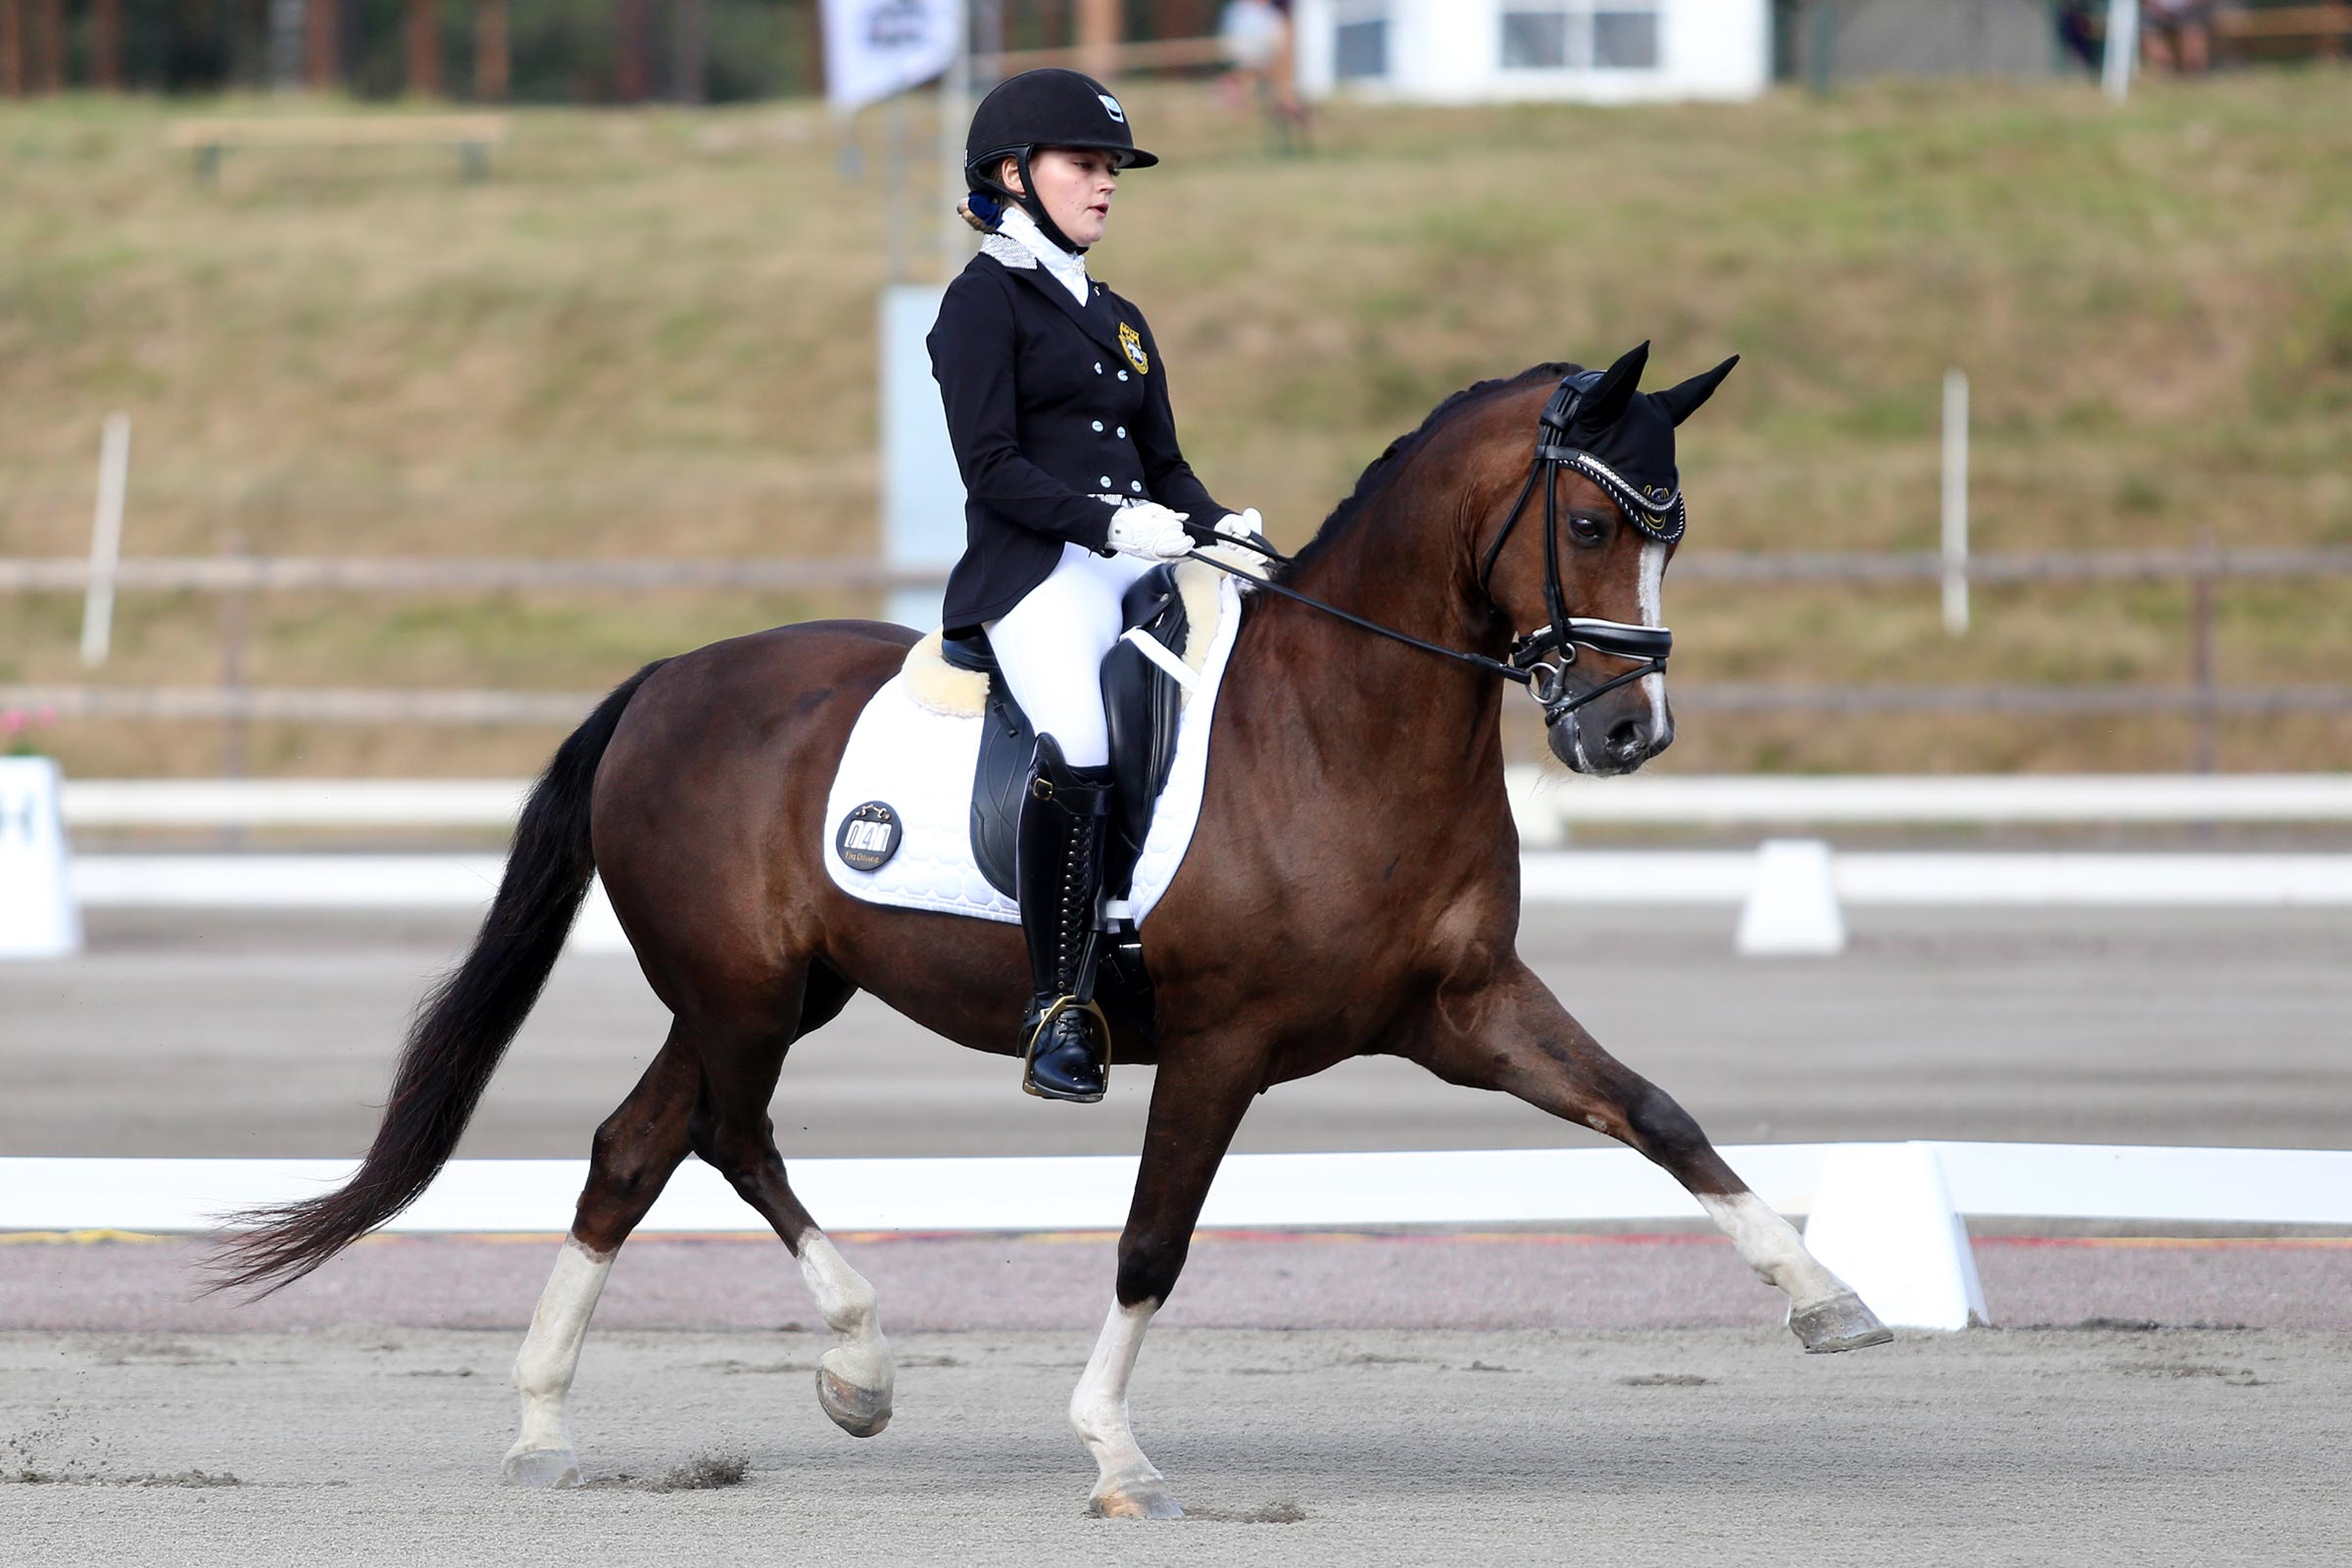 Silver: Elsa Ottosson - Don Chocolo (DRP val f-01 e Don Gregory-Rakt's Rocky)